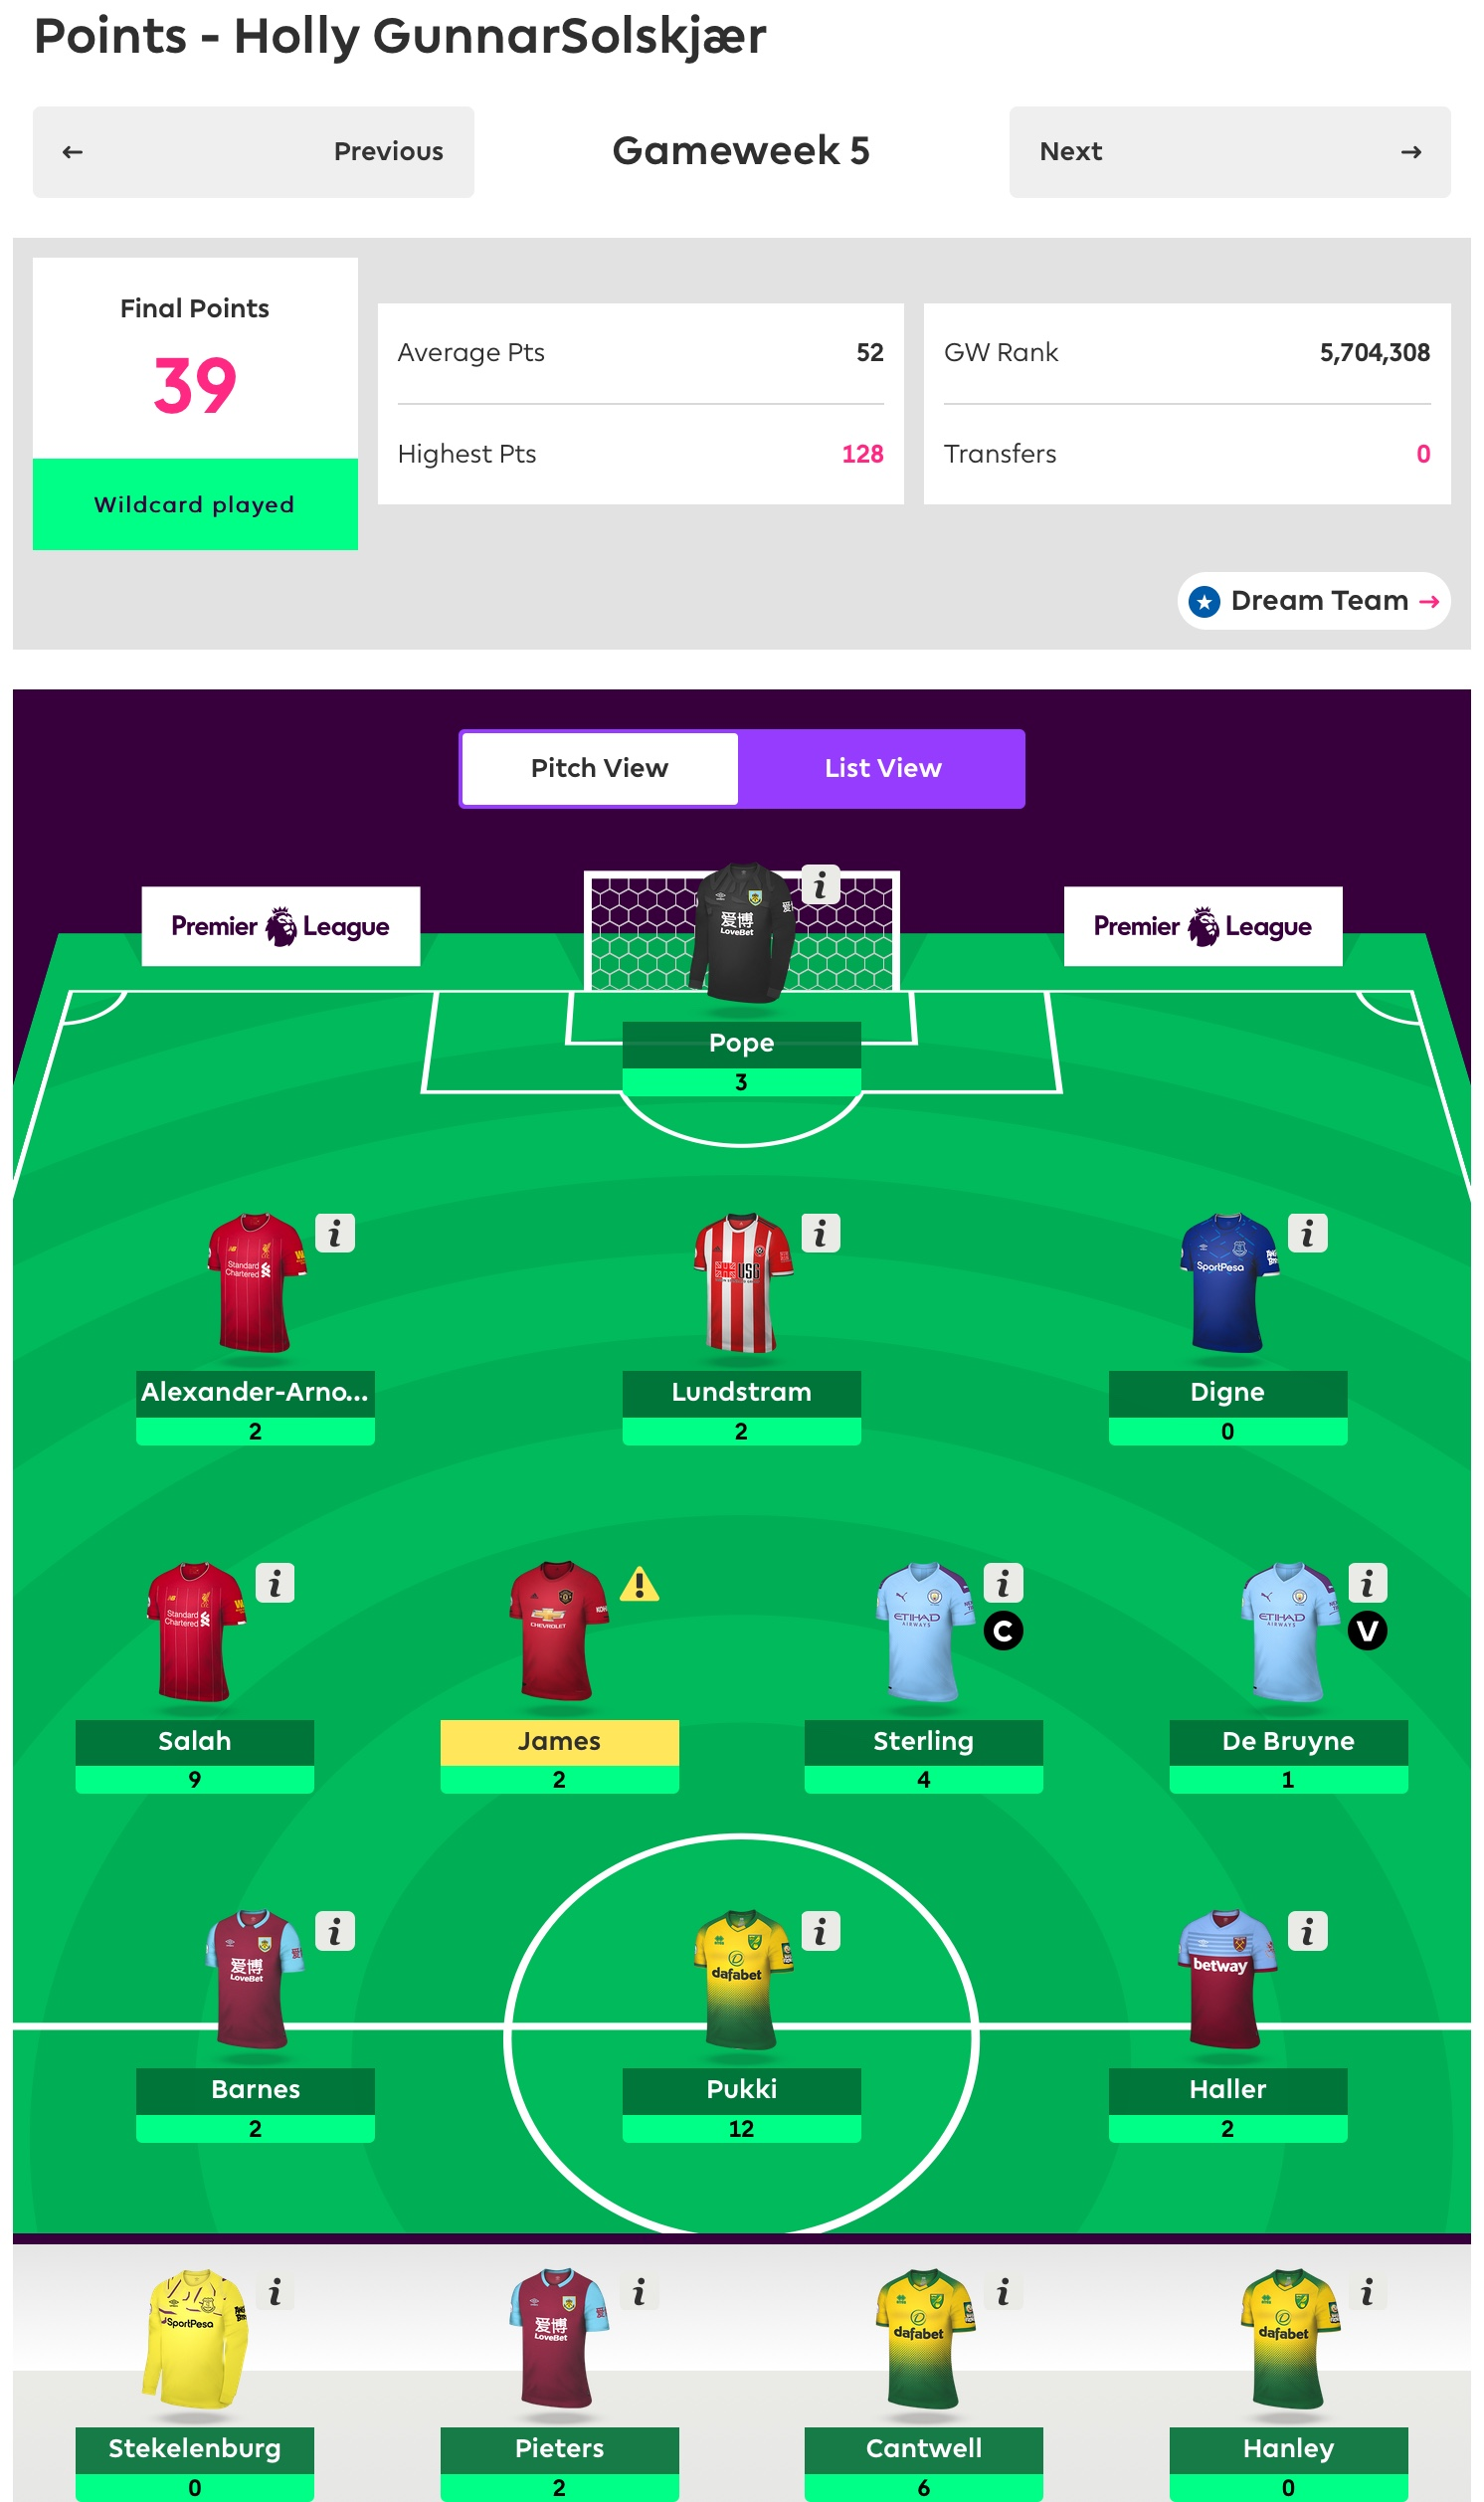 Gameweek 5 Review